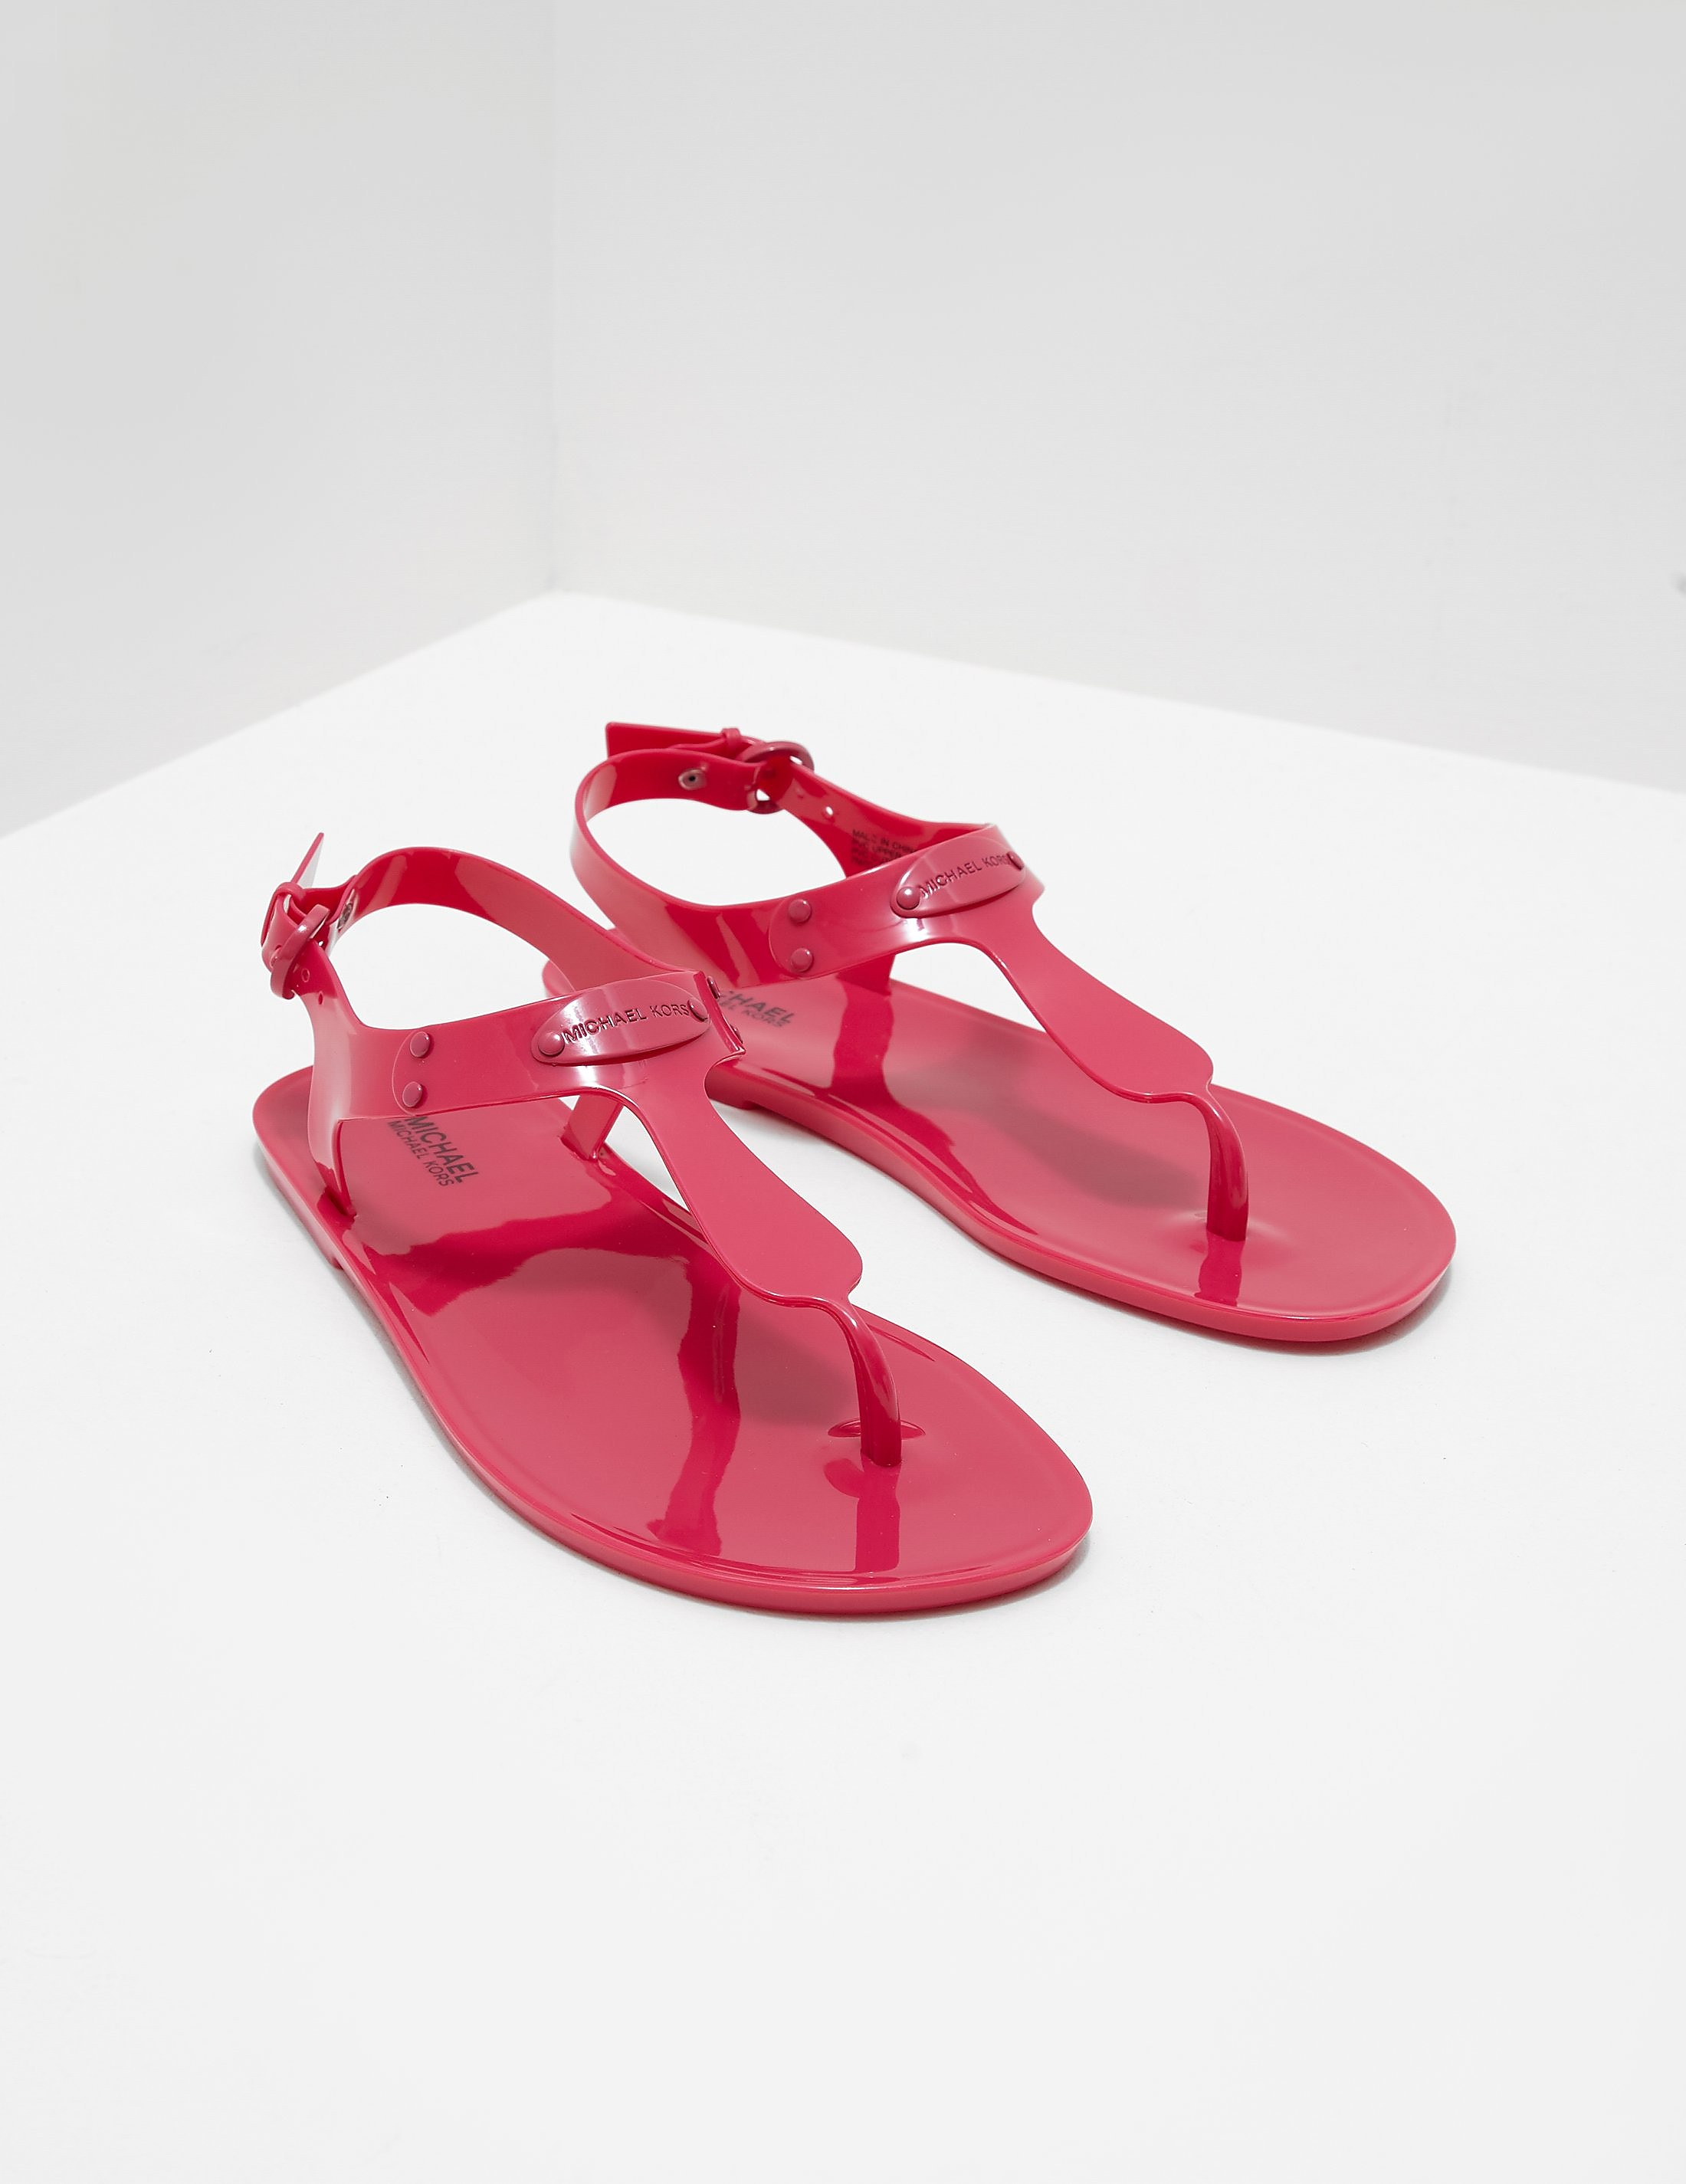 Michael Kors Jelly Plate Sandals